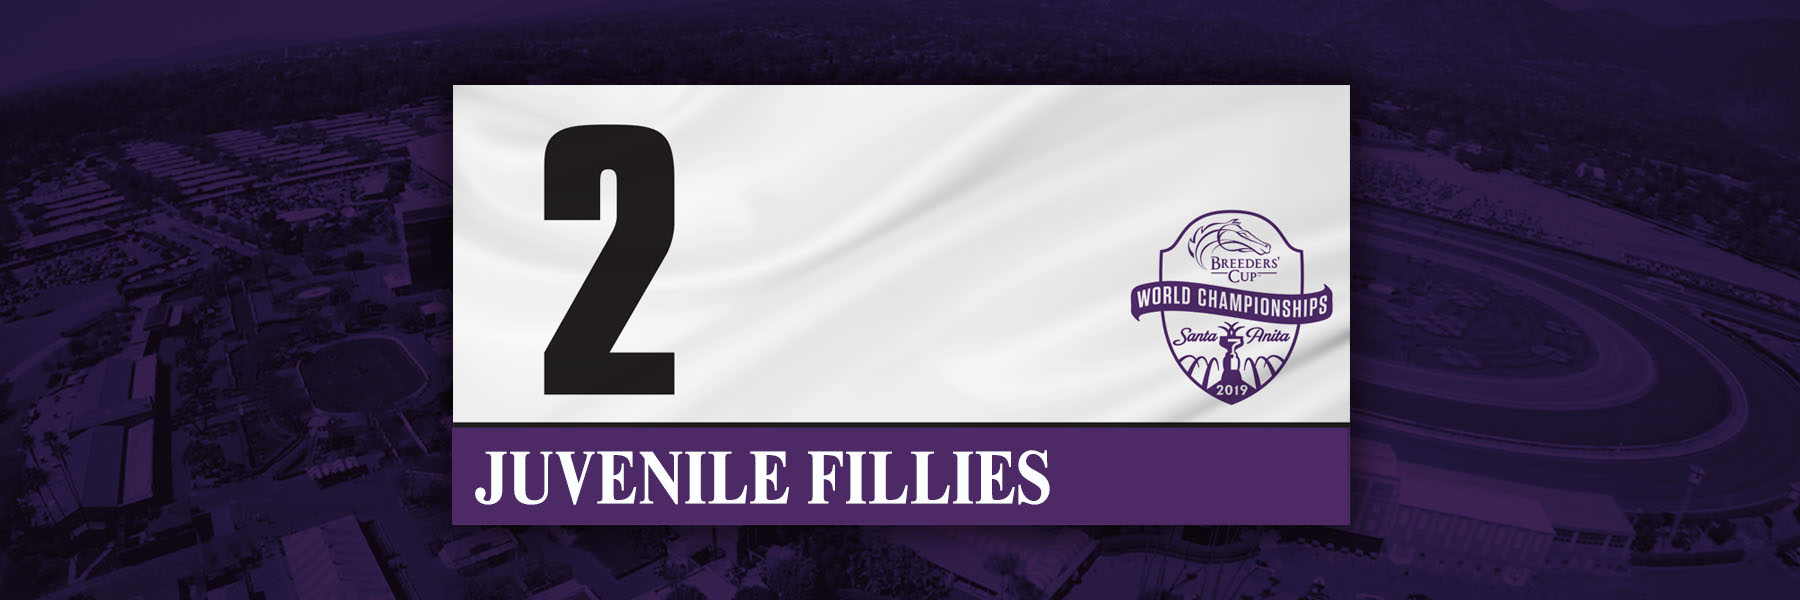 Breeders' Cup Juvenile Fillies Analysis and Betting Strategies for November 1st, 2019